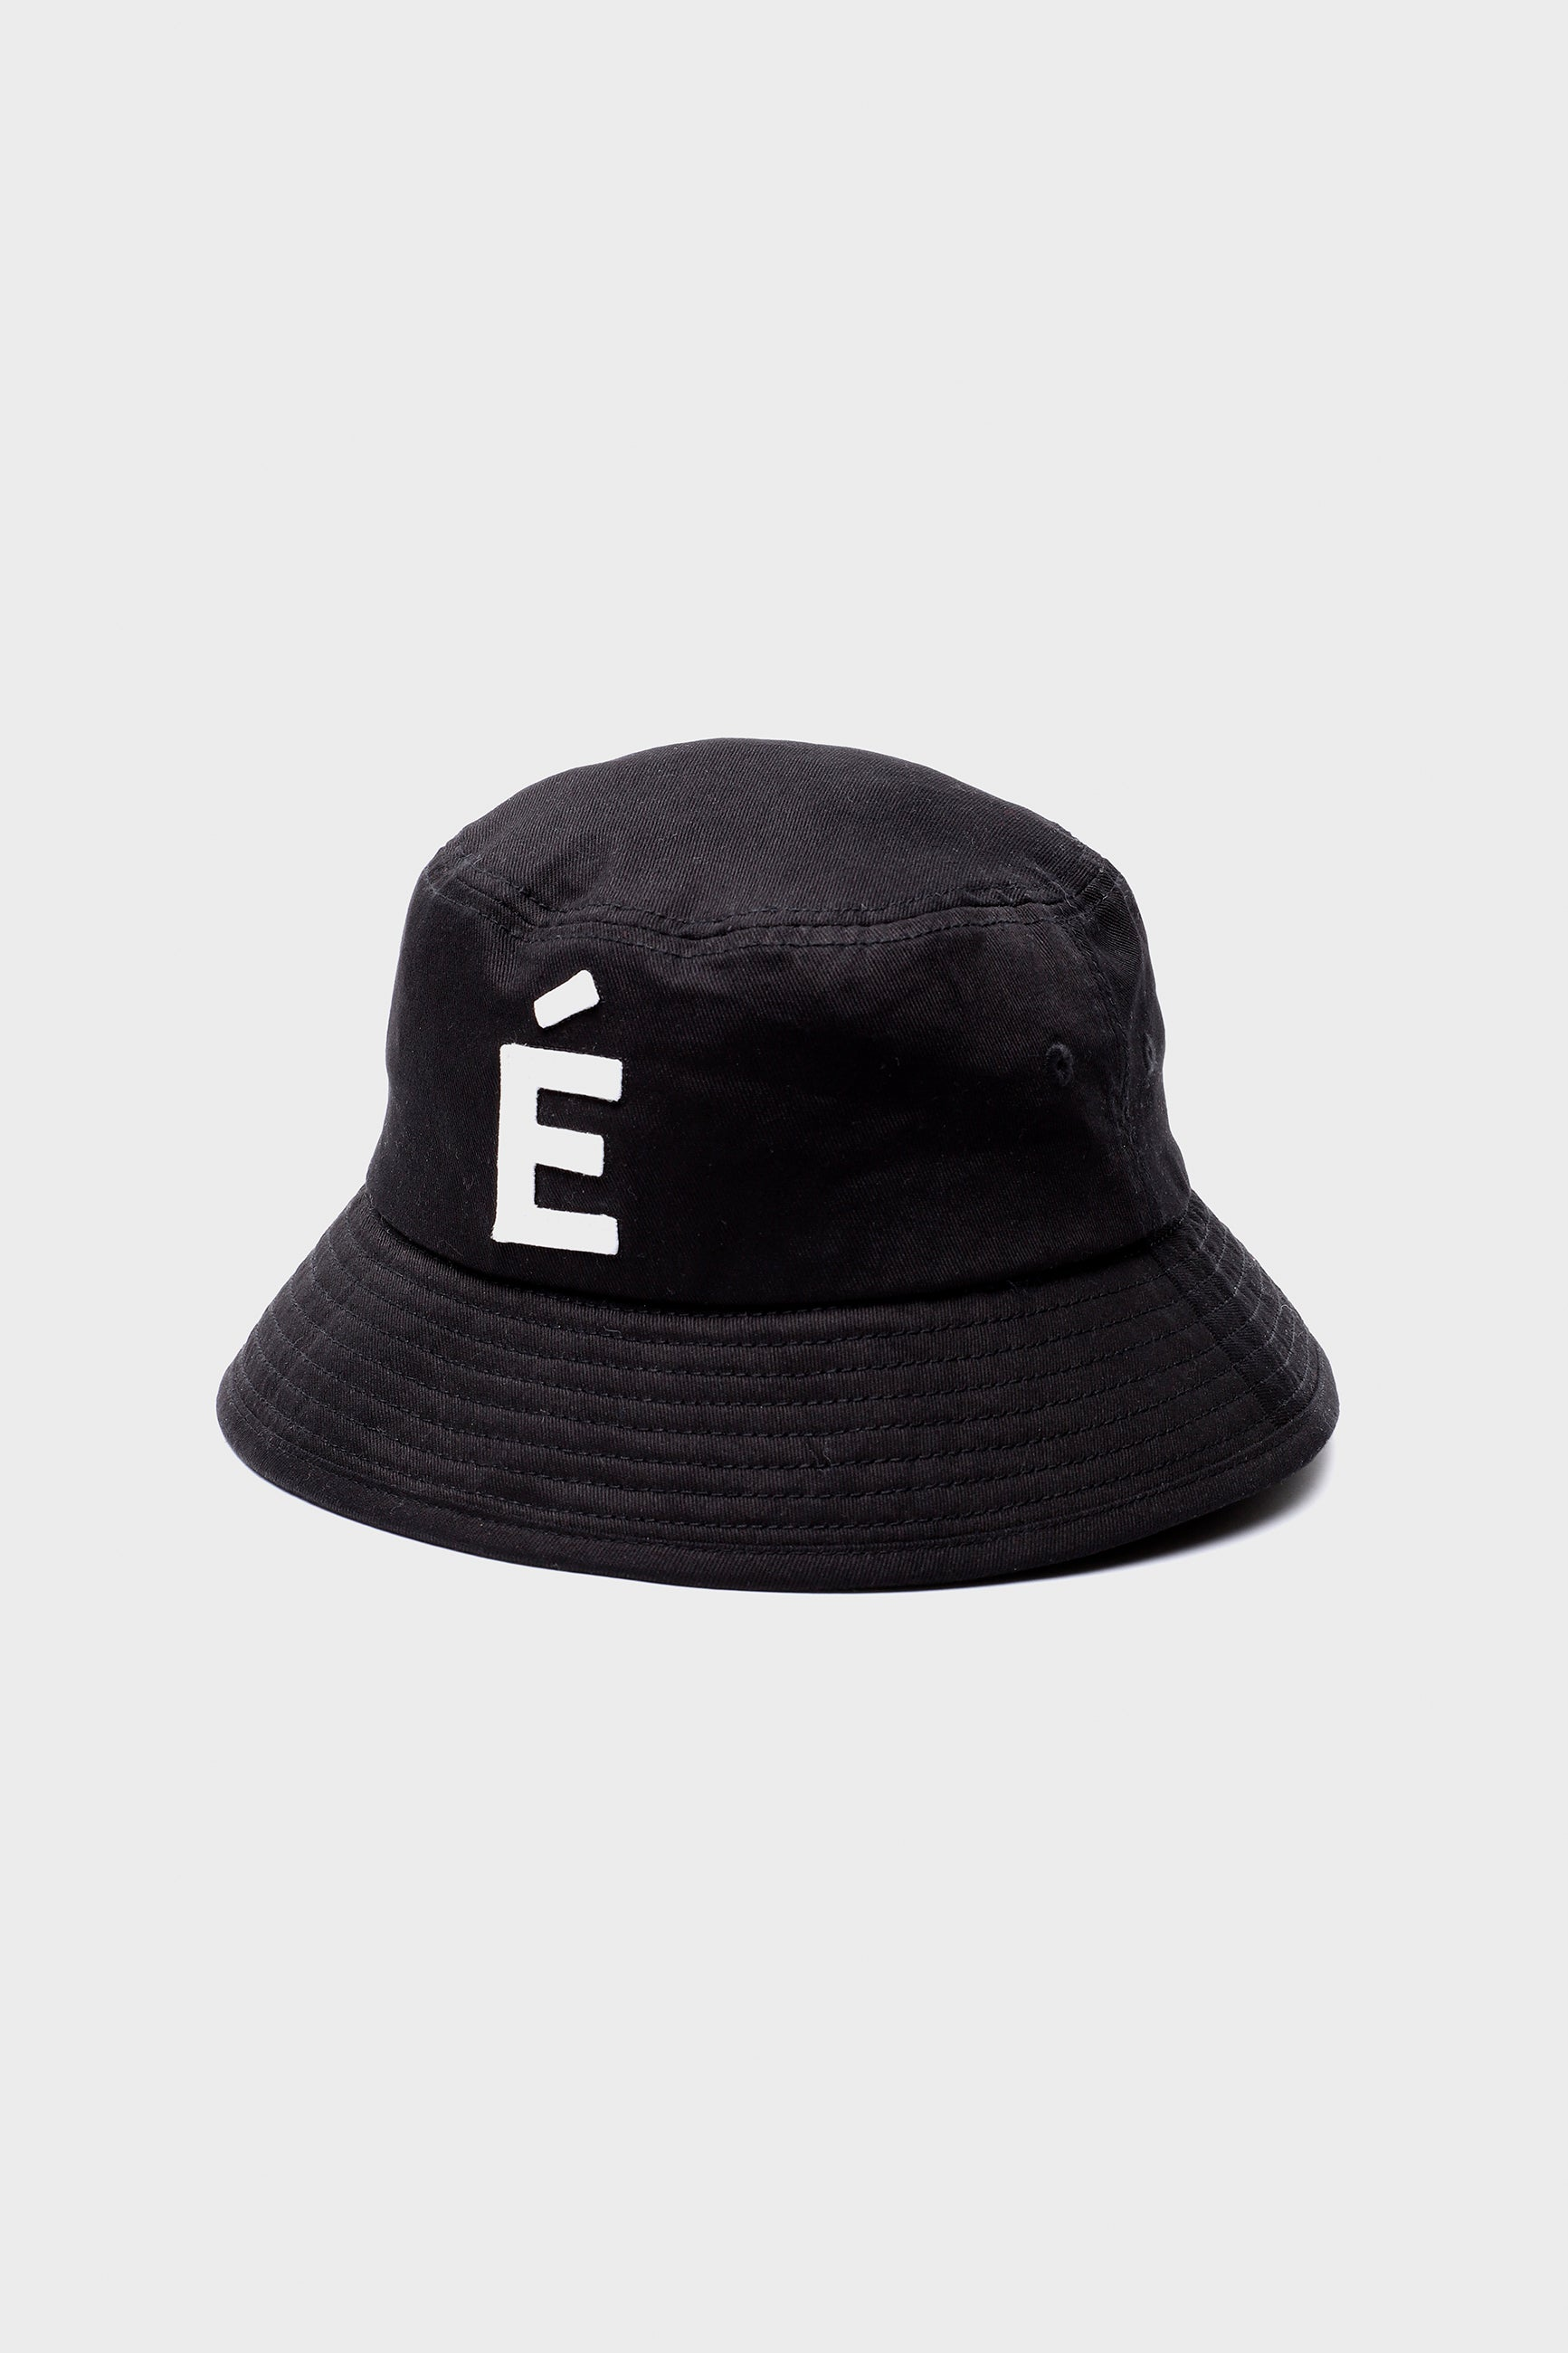 Études Training Hat Patch Black 1